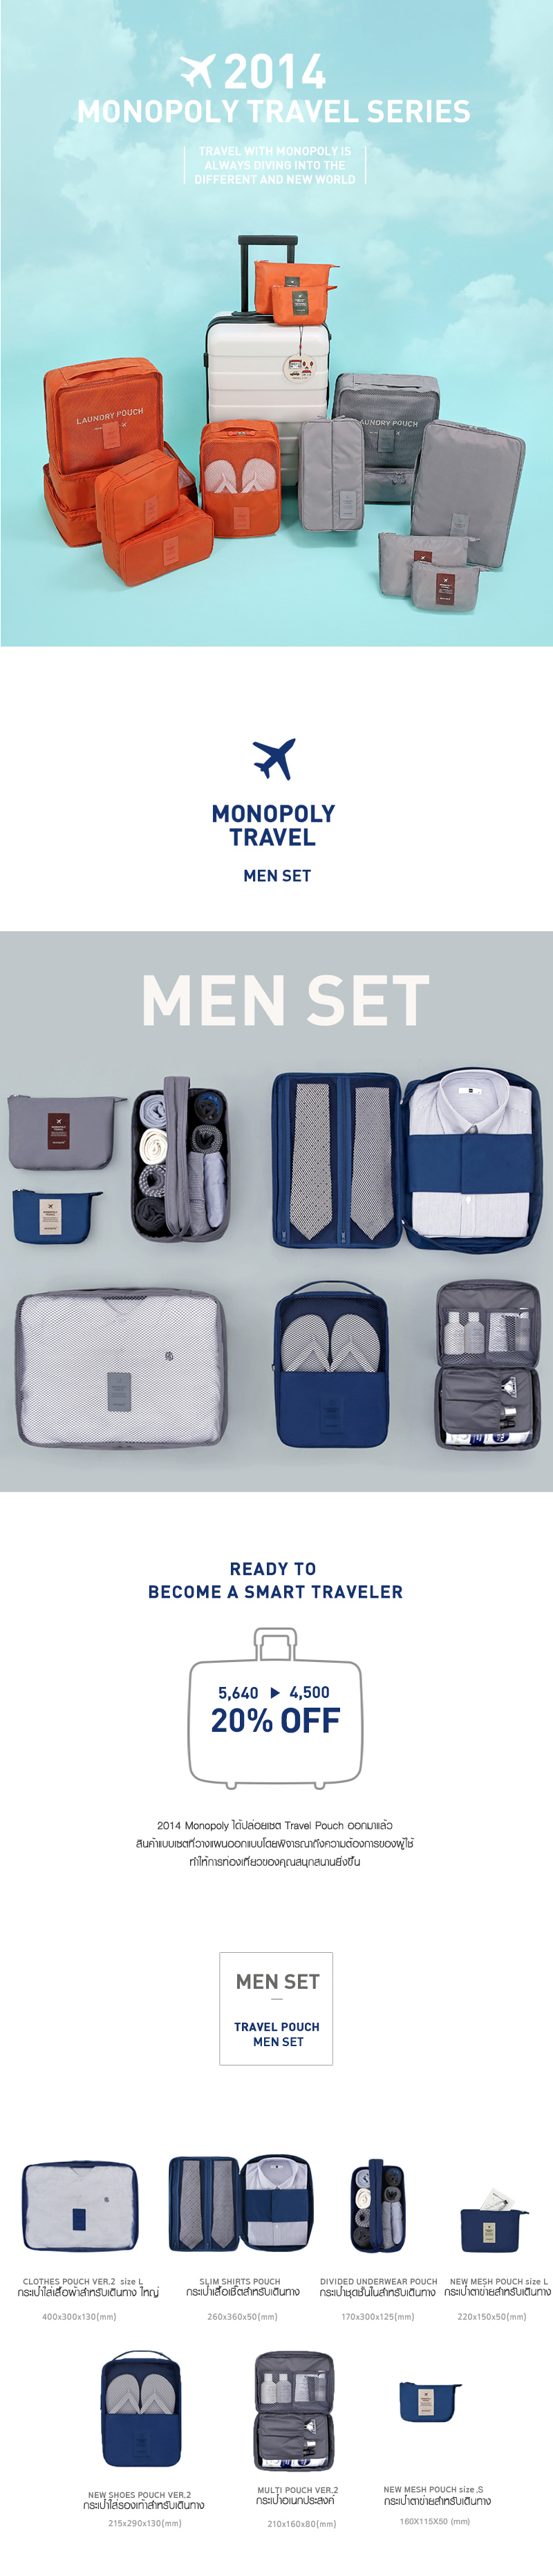 men-set-long-1.jpg